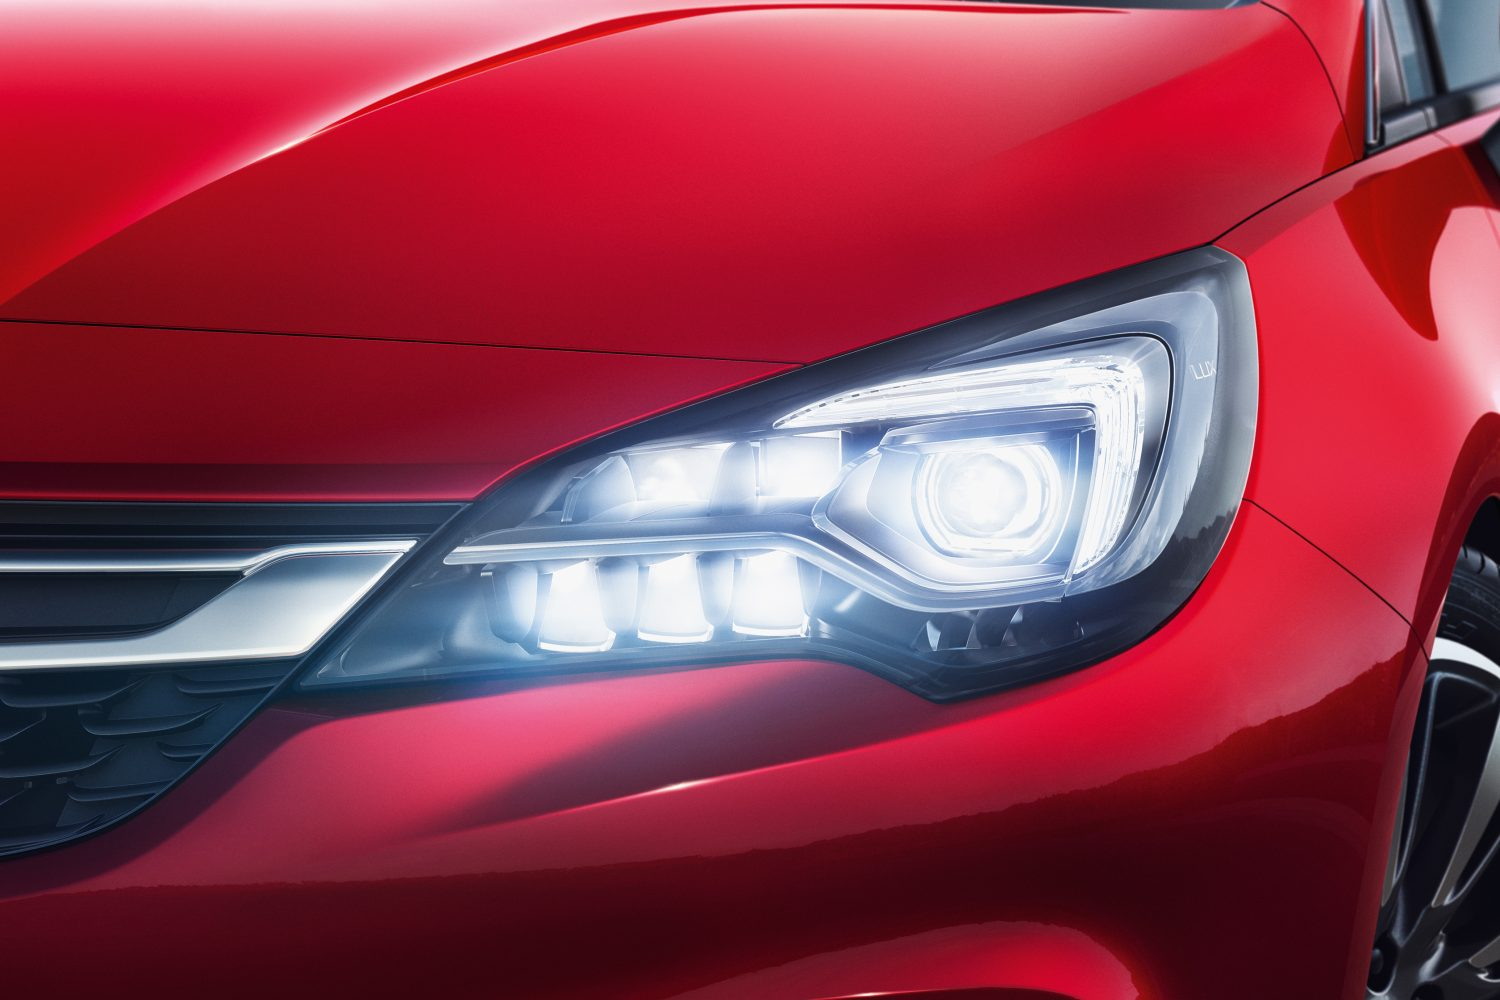 Opel-Astra-IntelliLux-LED